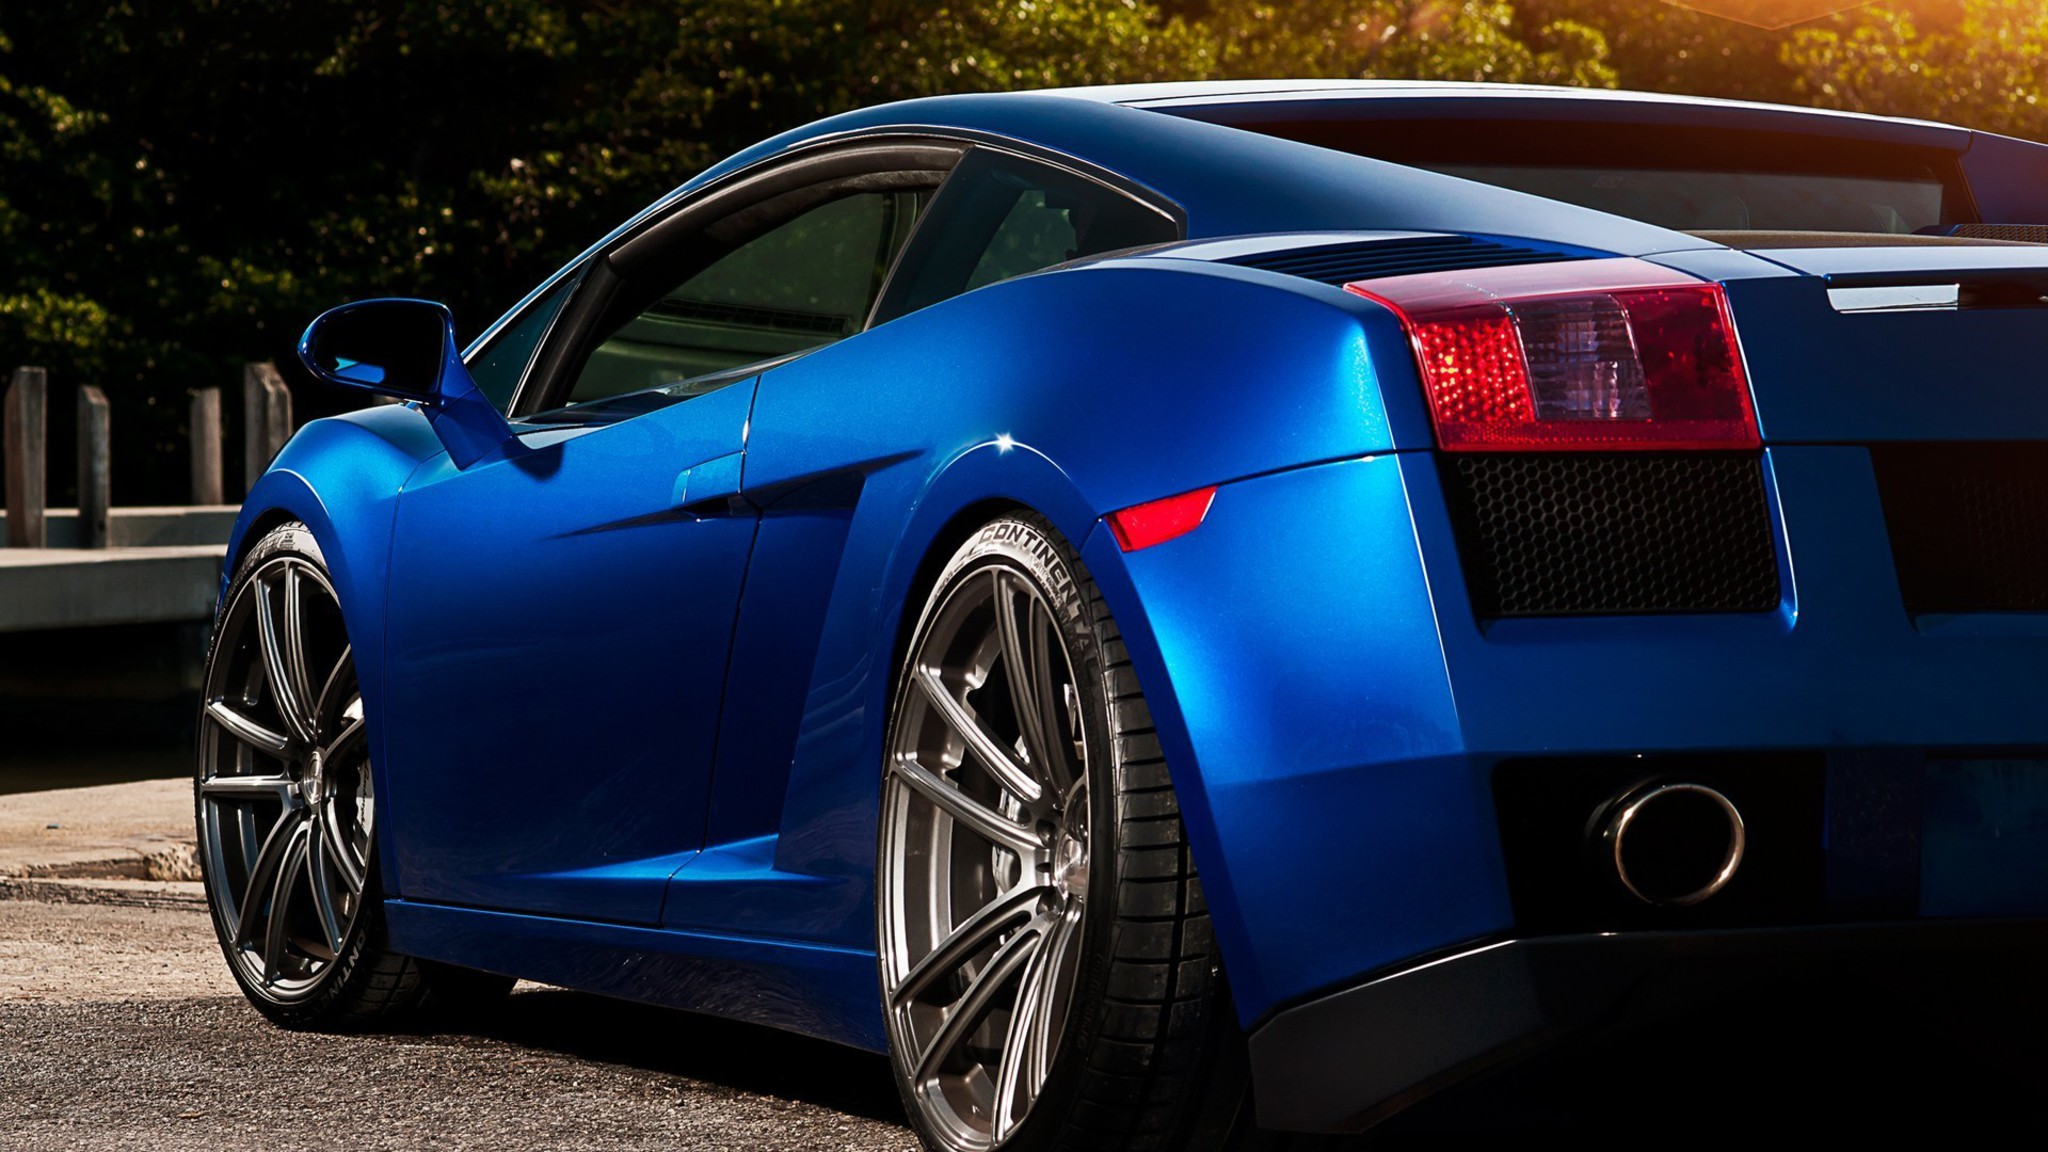 wallpaper resolutions - Lamborghini Gallardo Wallpaper Blue